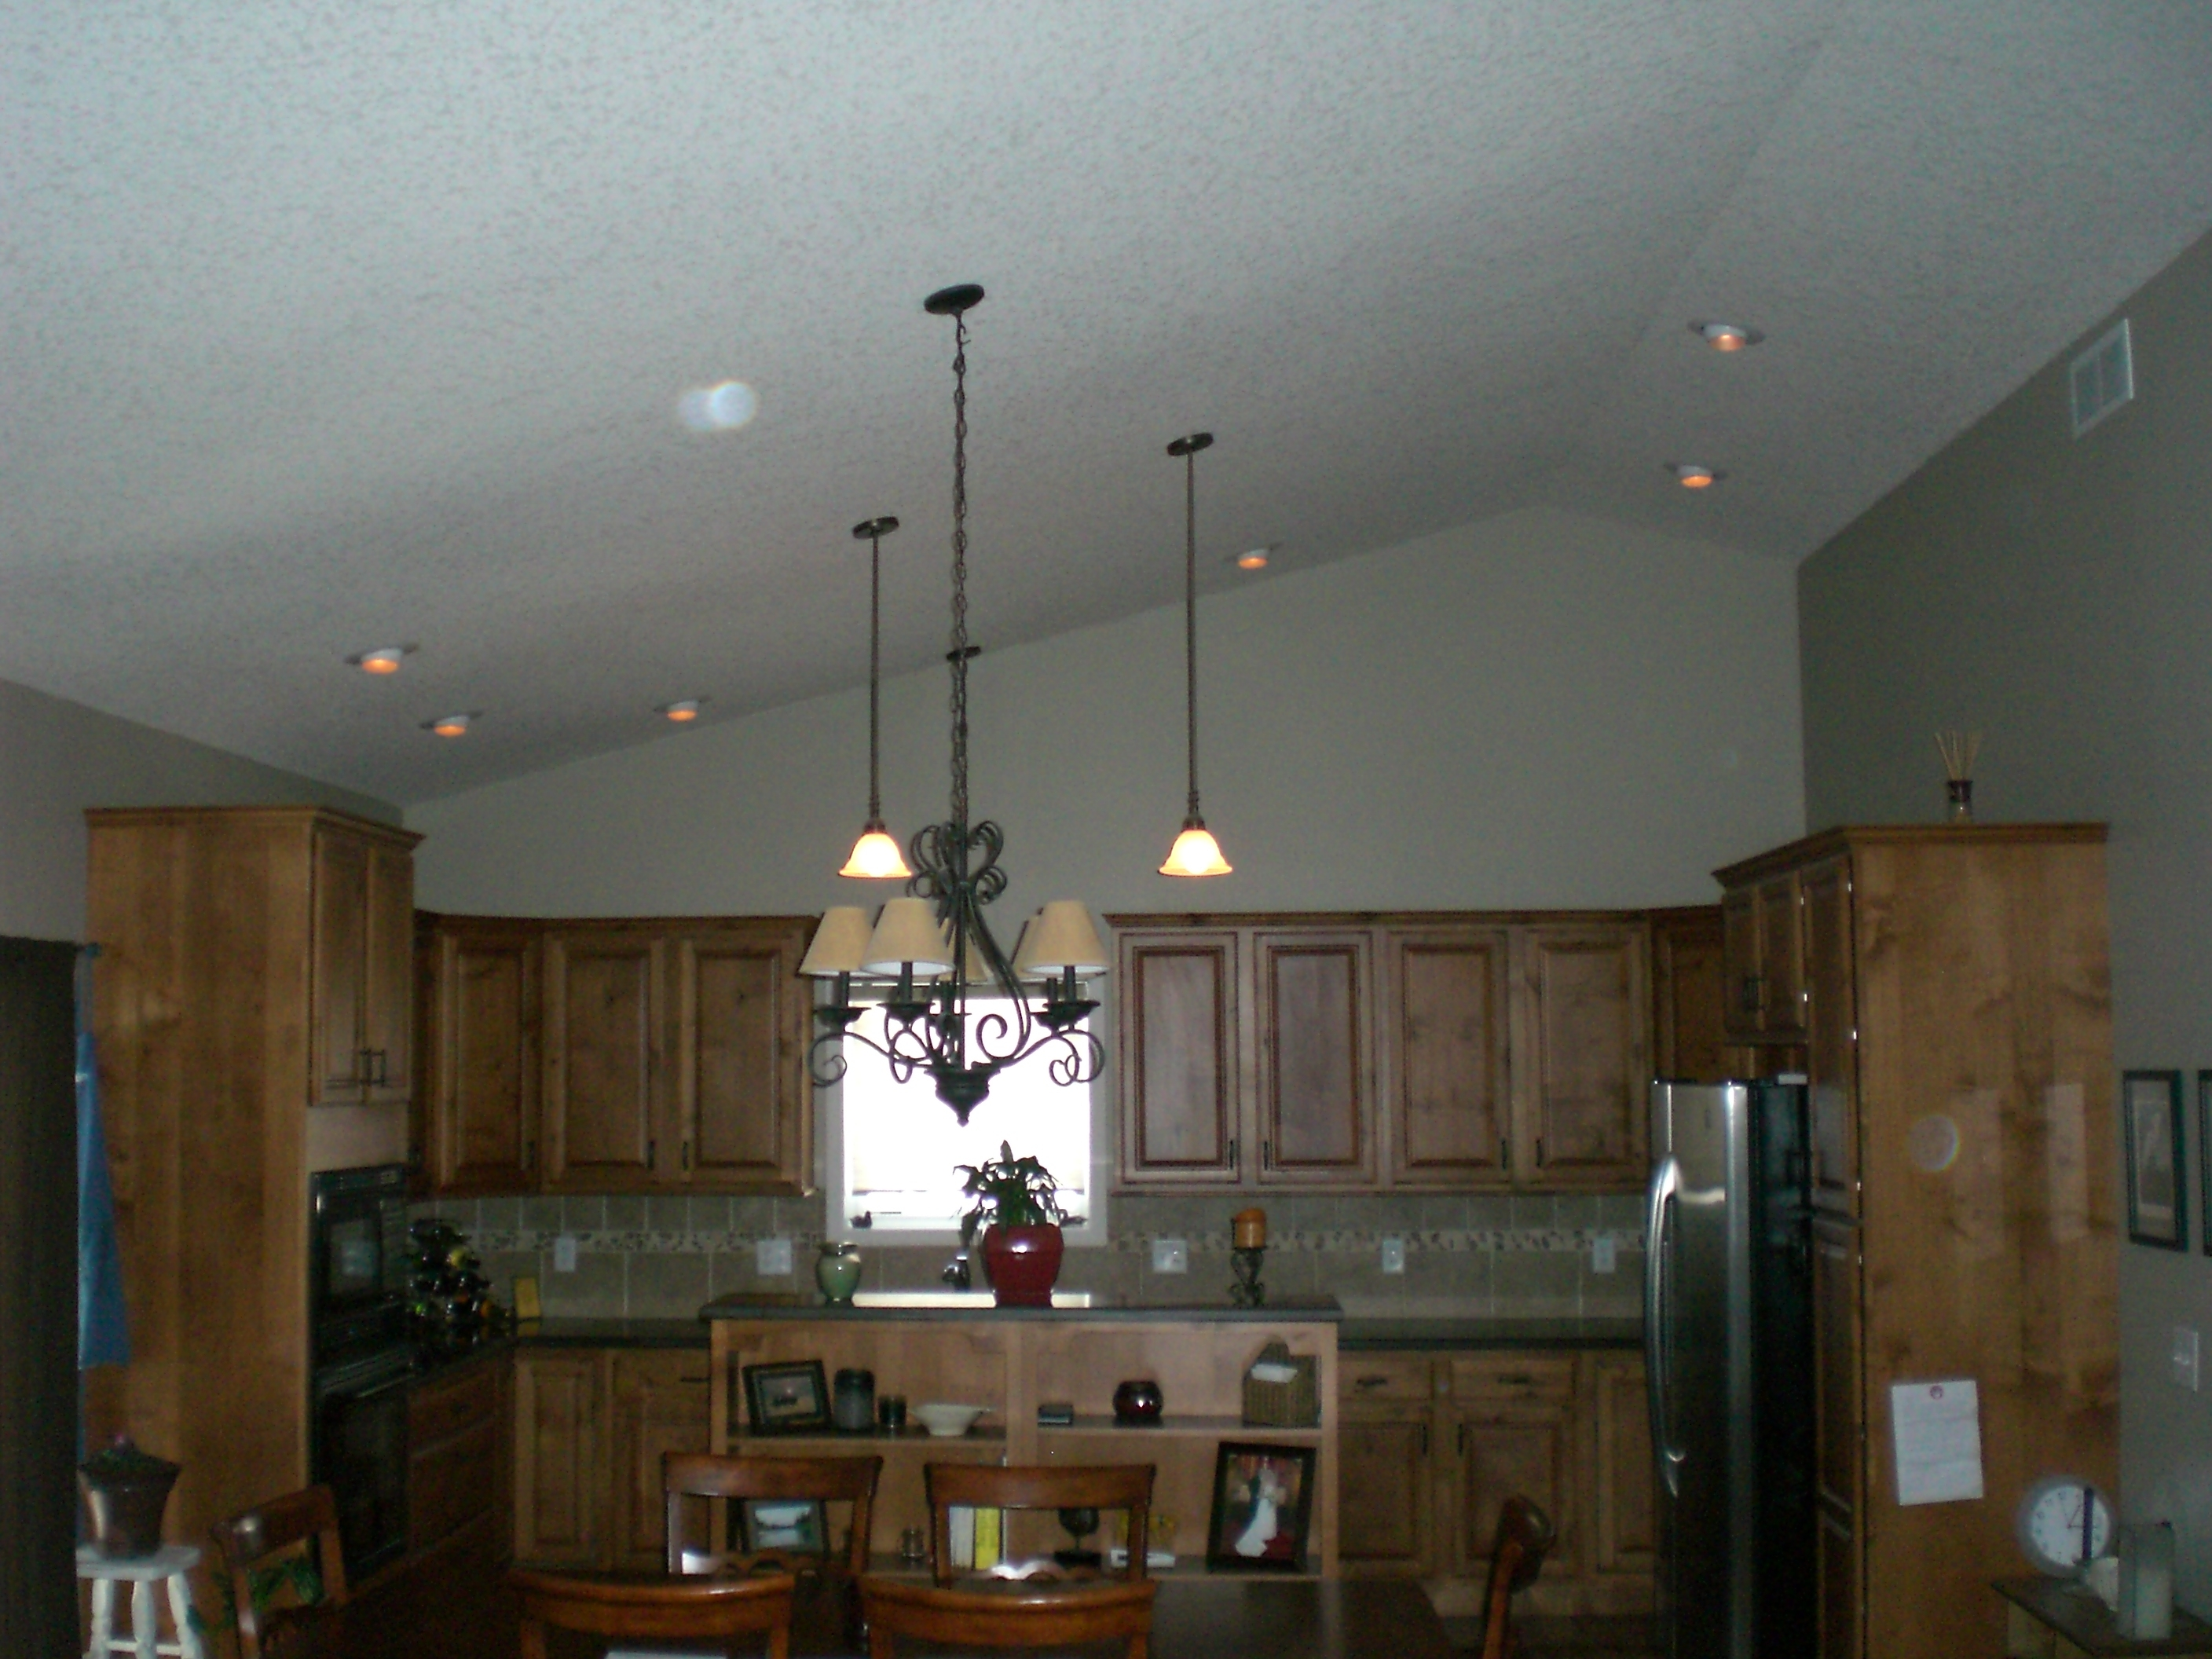 Recessed Lighting Fixtures For Vaulted Ceilings